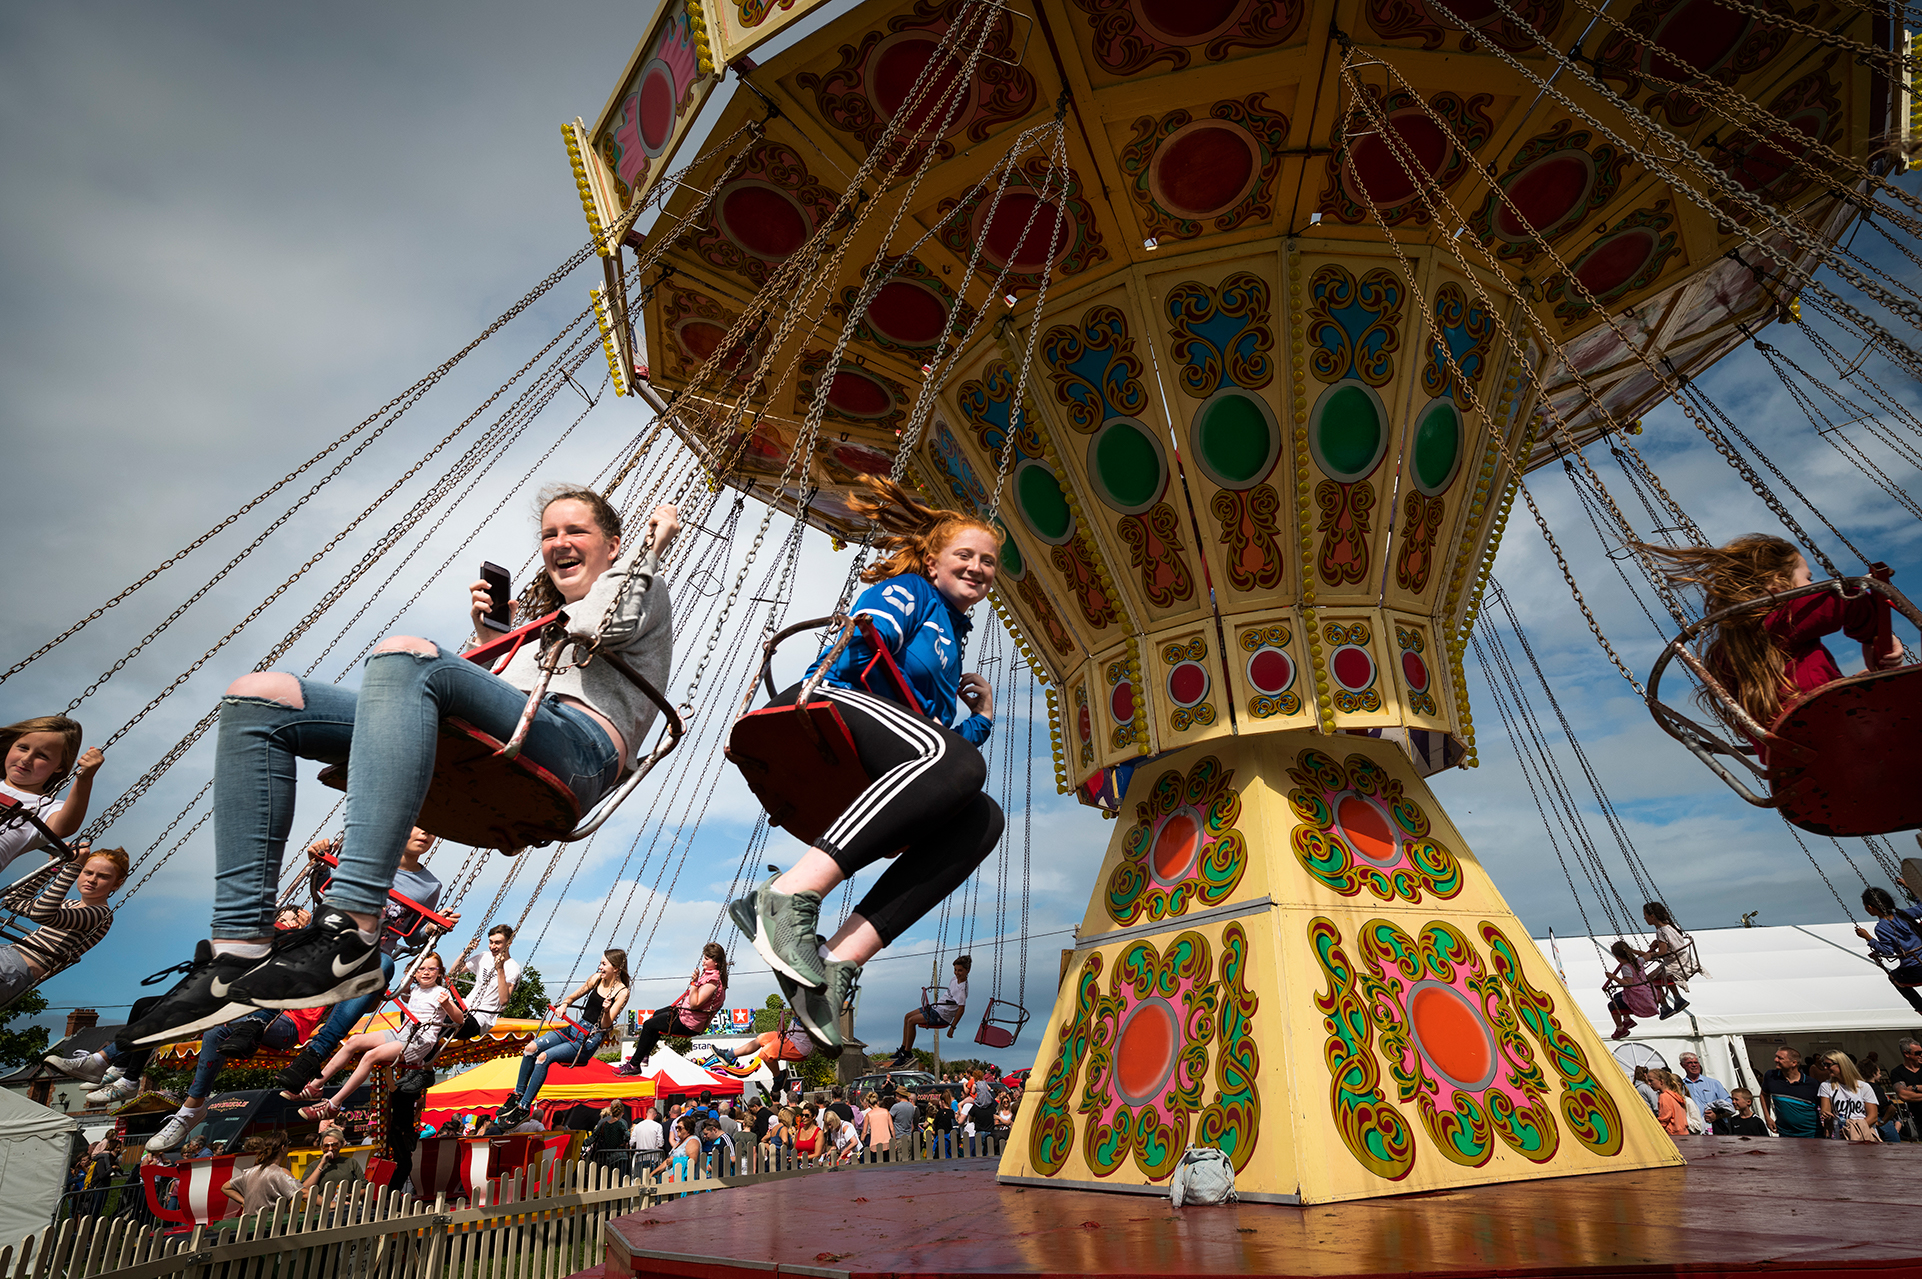 merry go round in action at a theme park in ireland